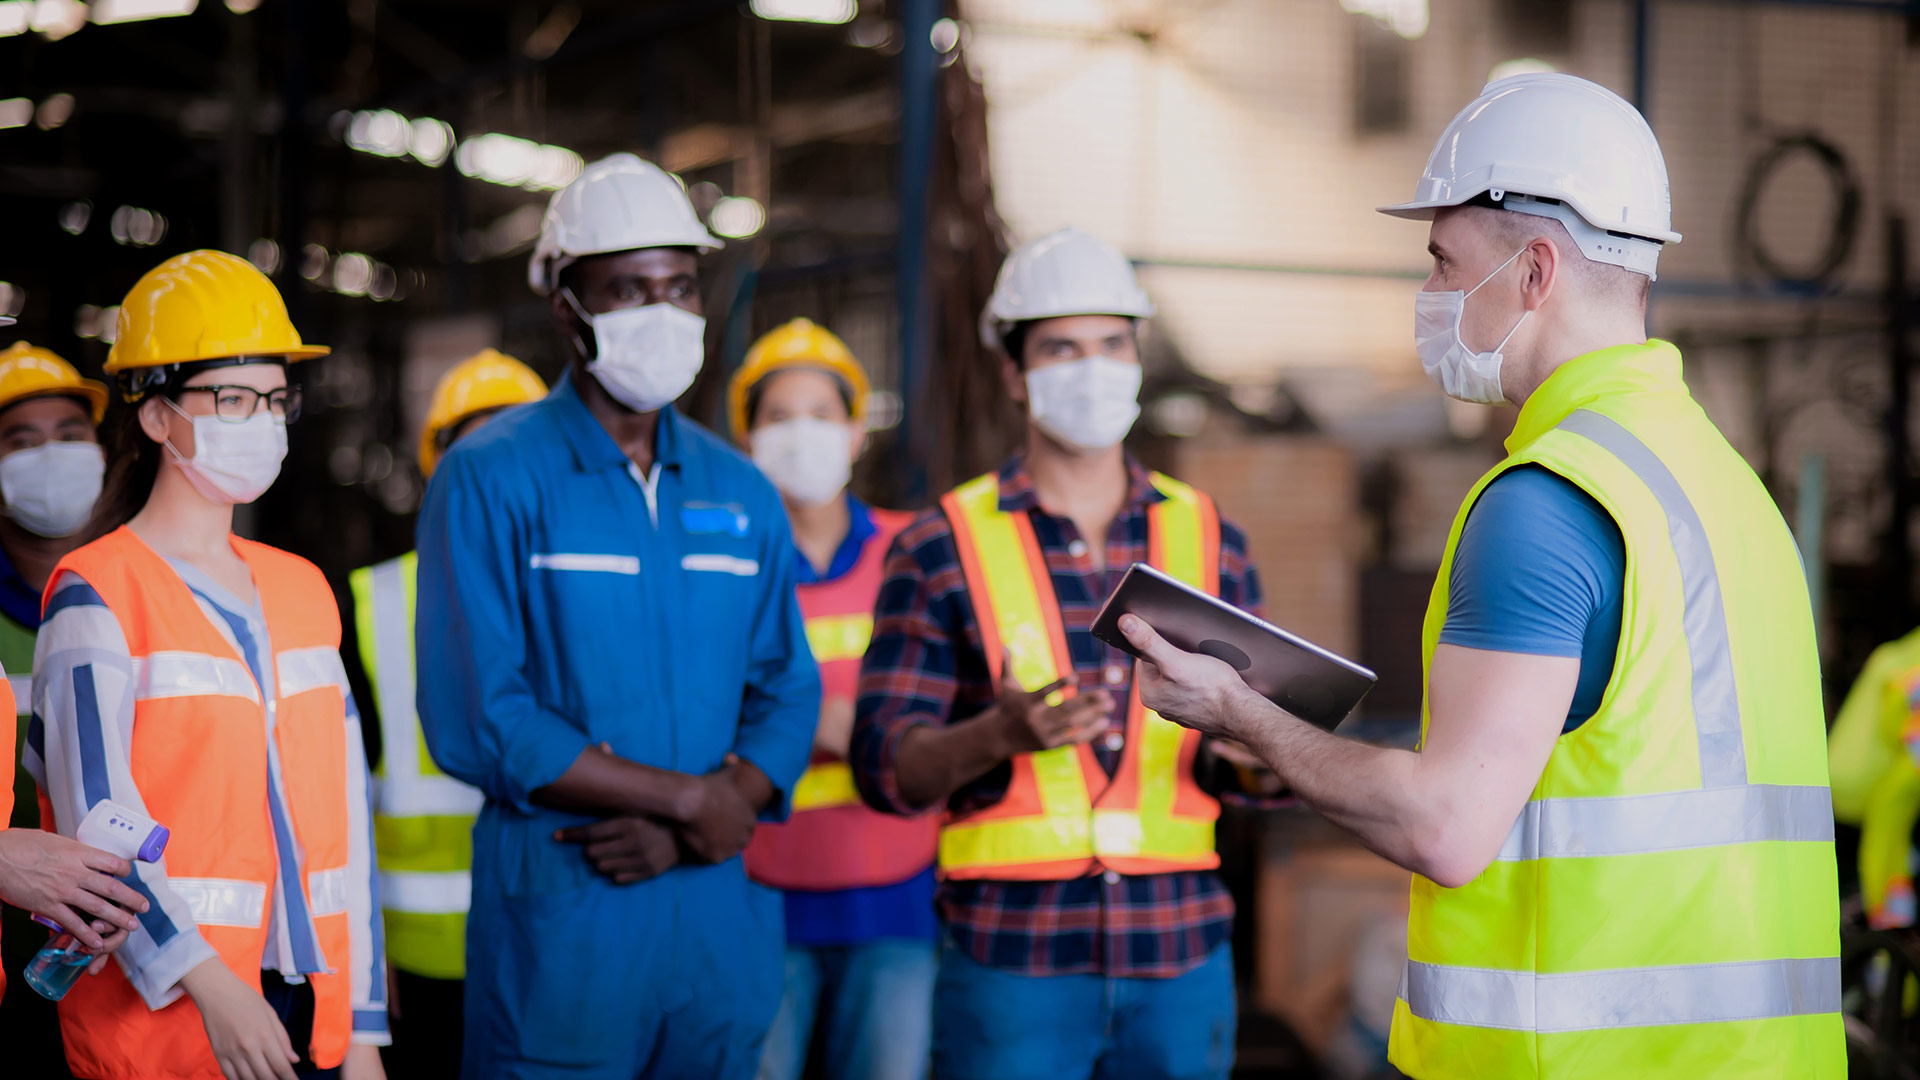 UHCL offers free professional development on workplace safety